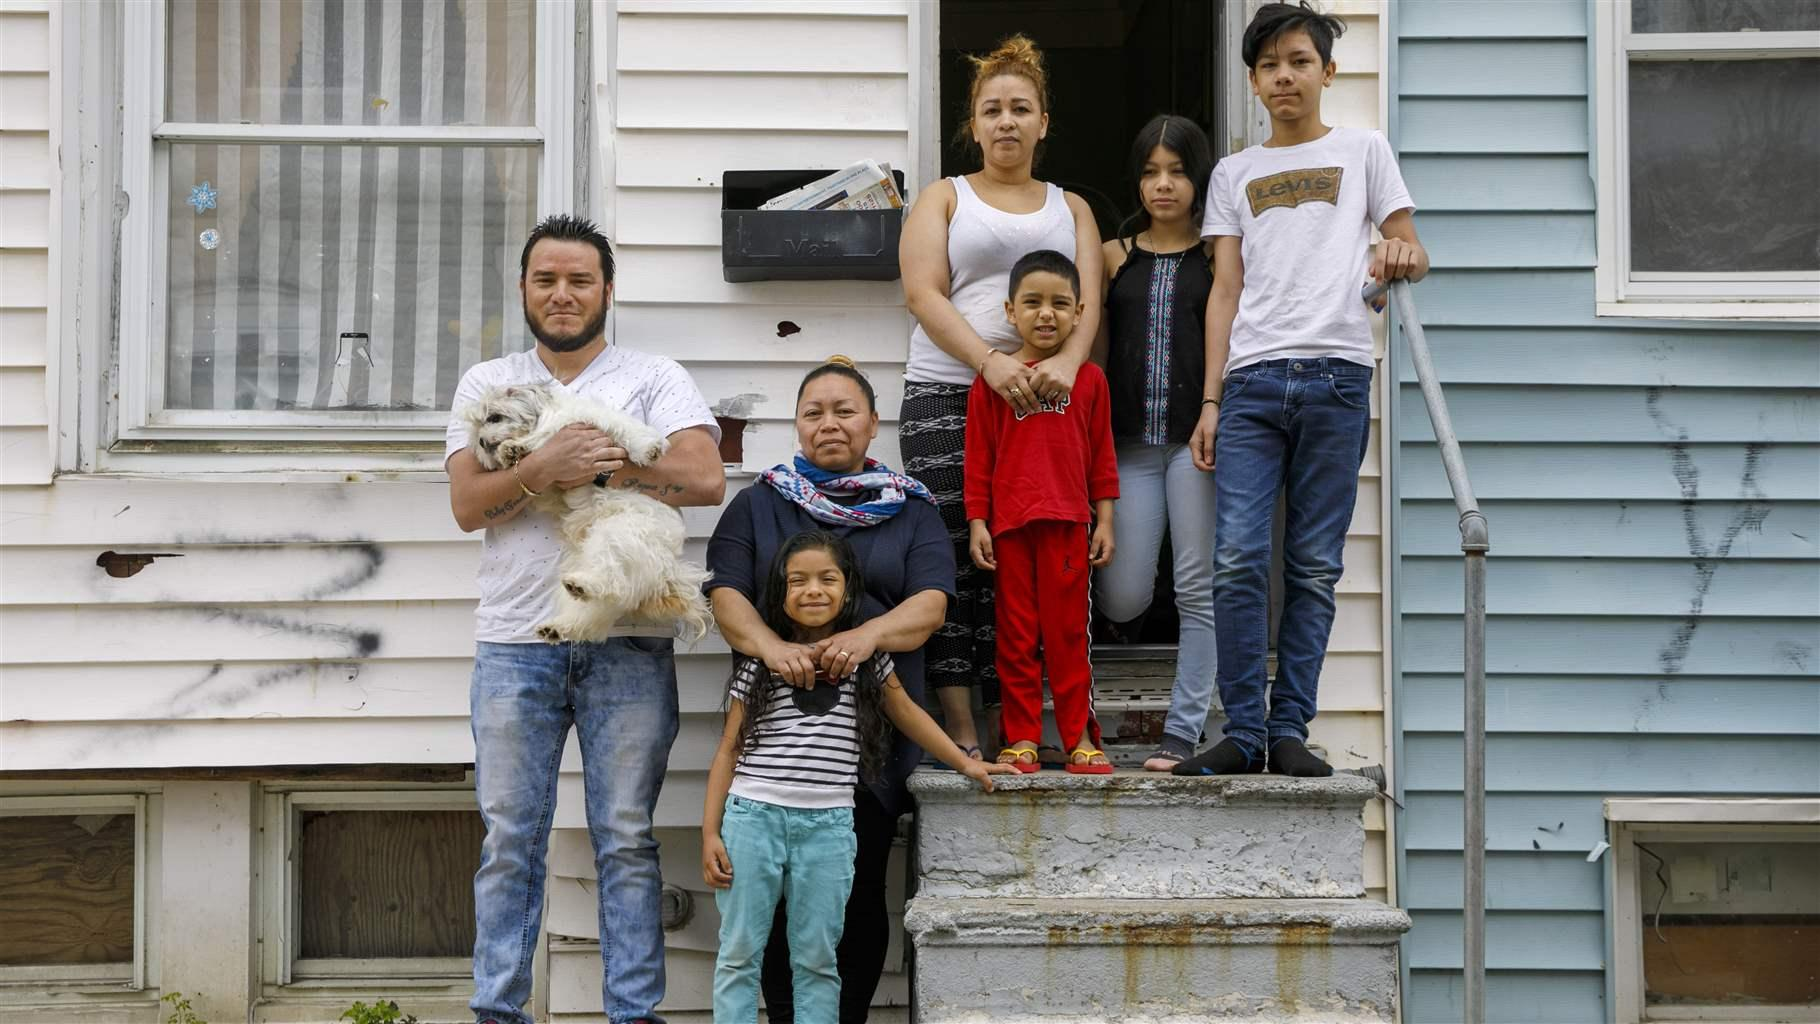 Evicted family